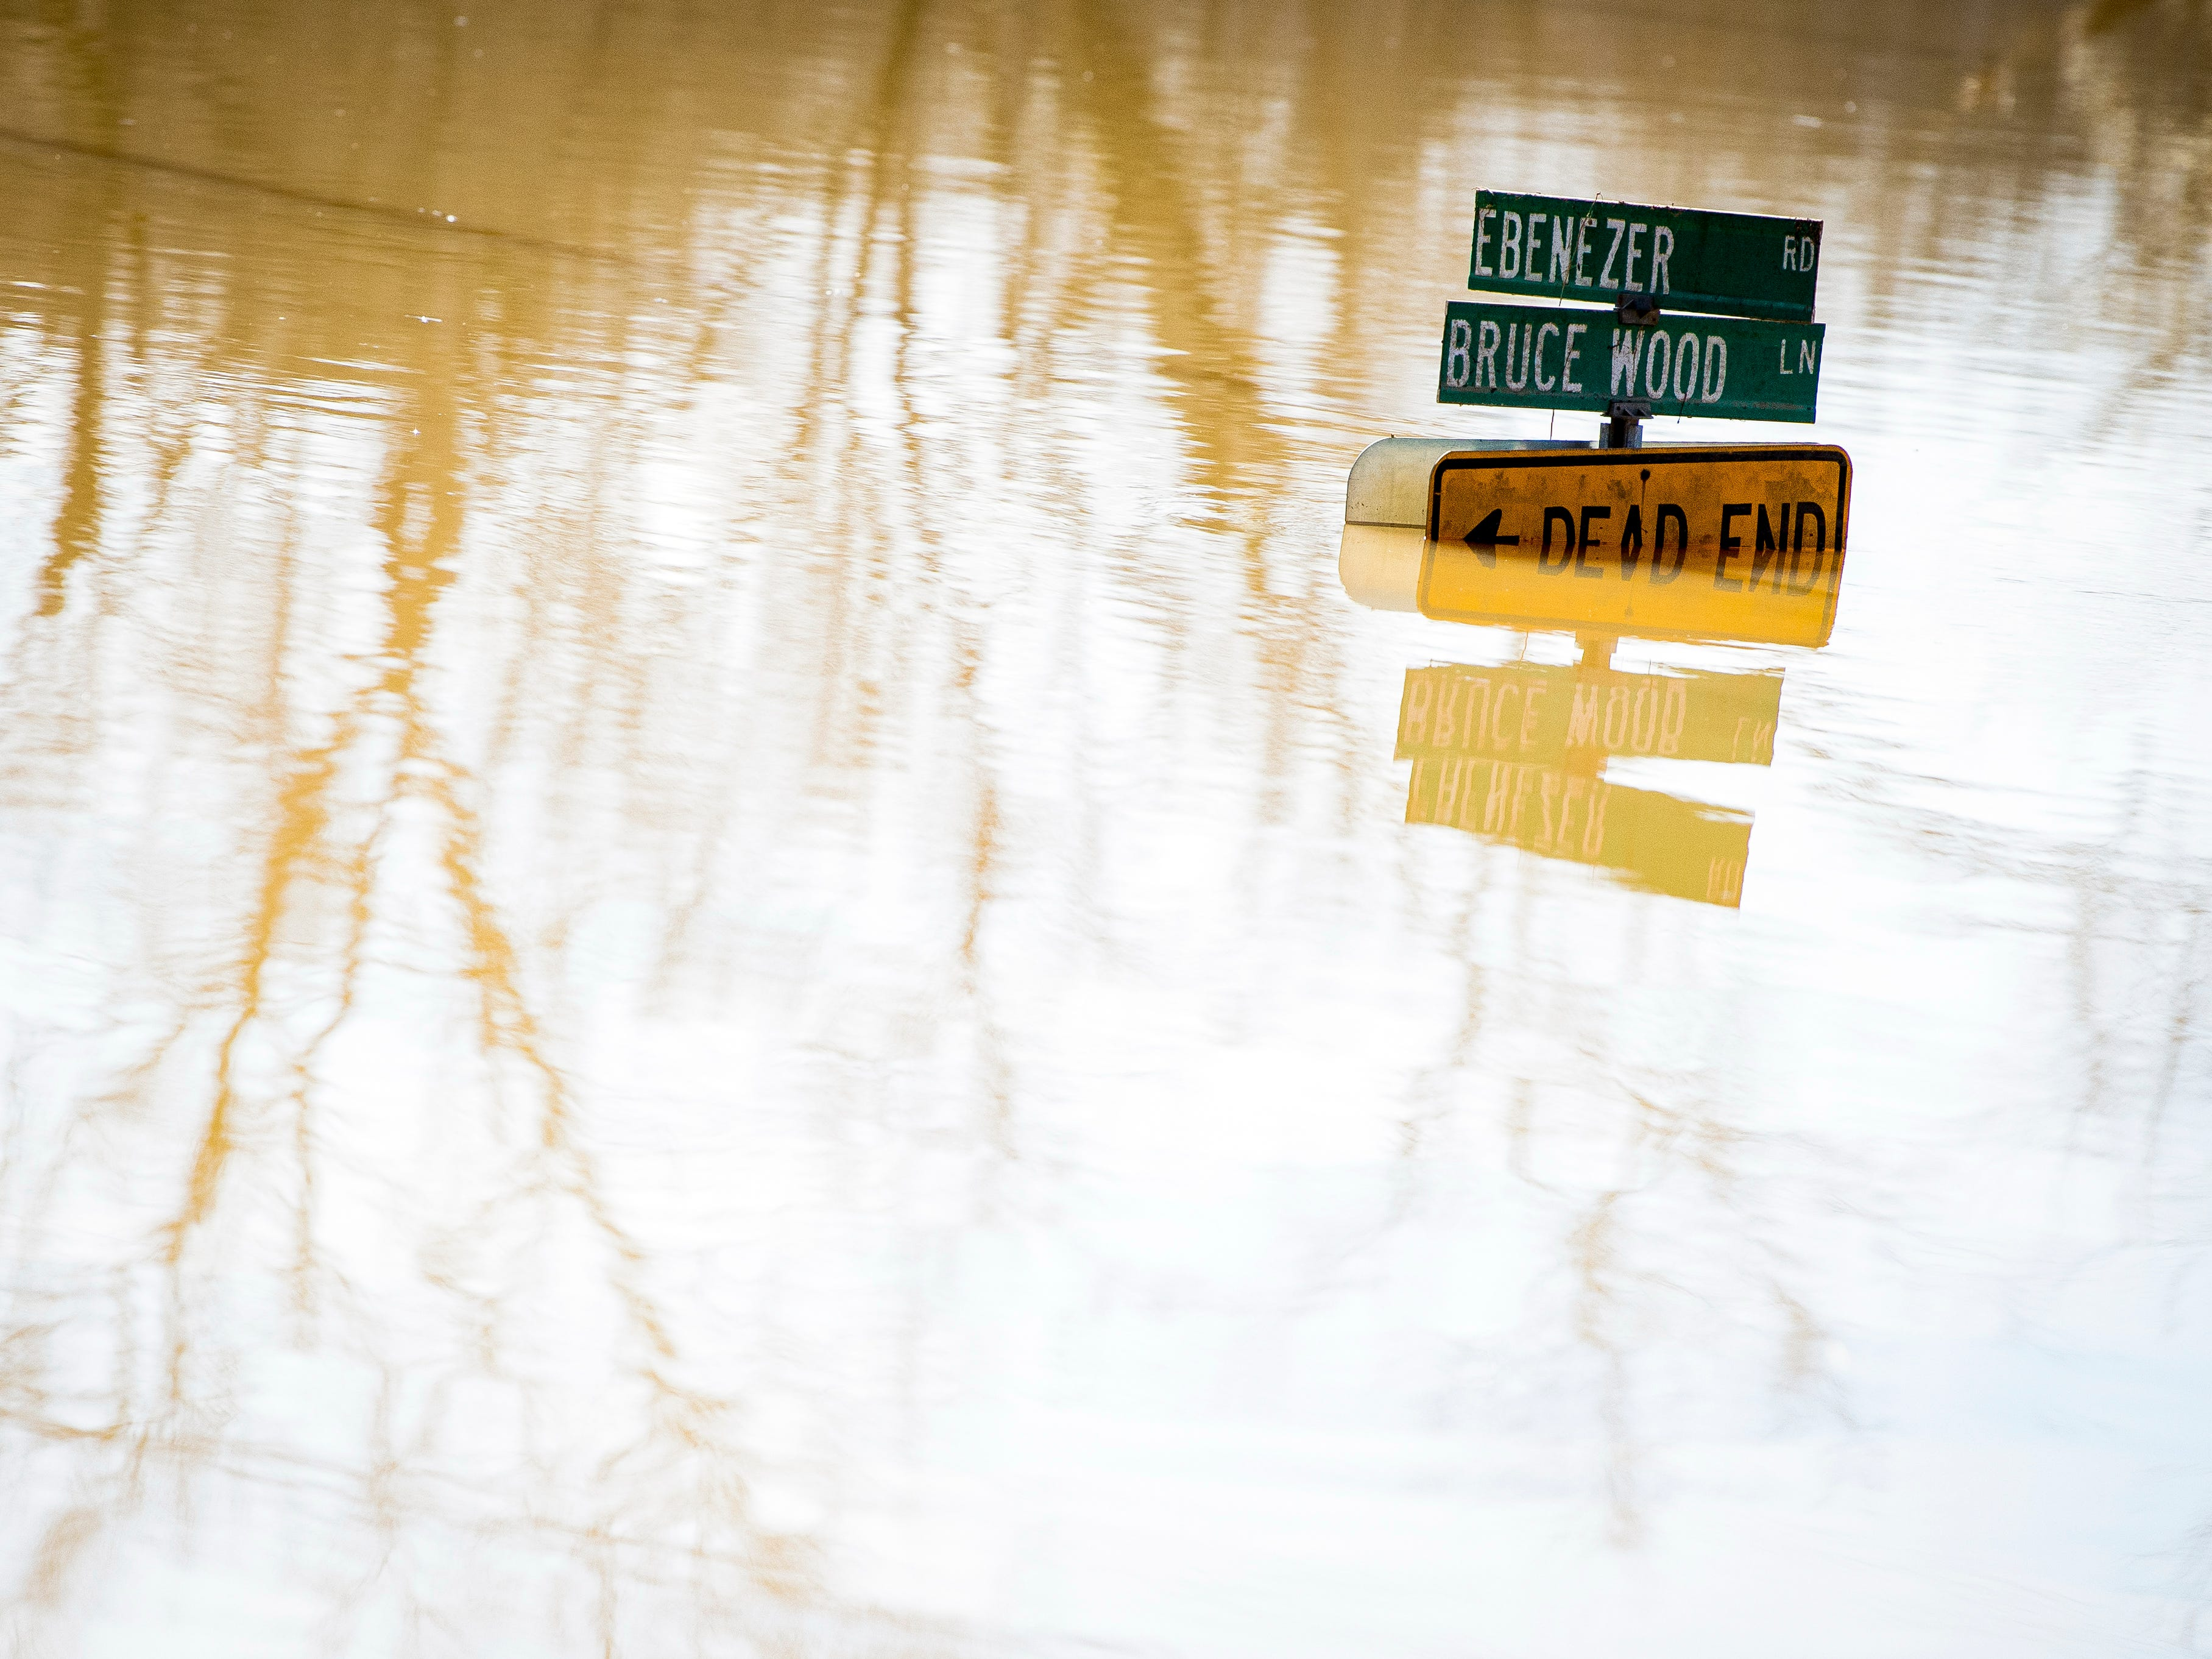 A street sign for Ebenezer Road and Brucewood Lane pops out of the floodwaters in Knoxville on Monday, February 25, 2019.